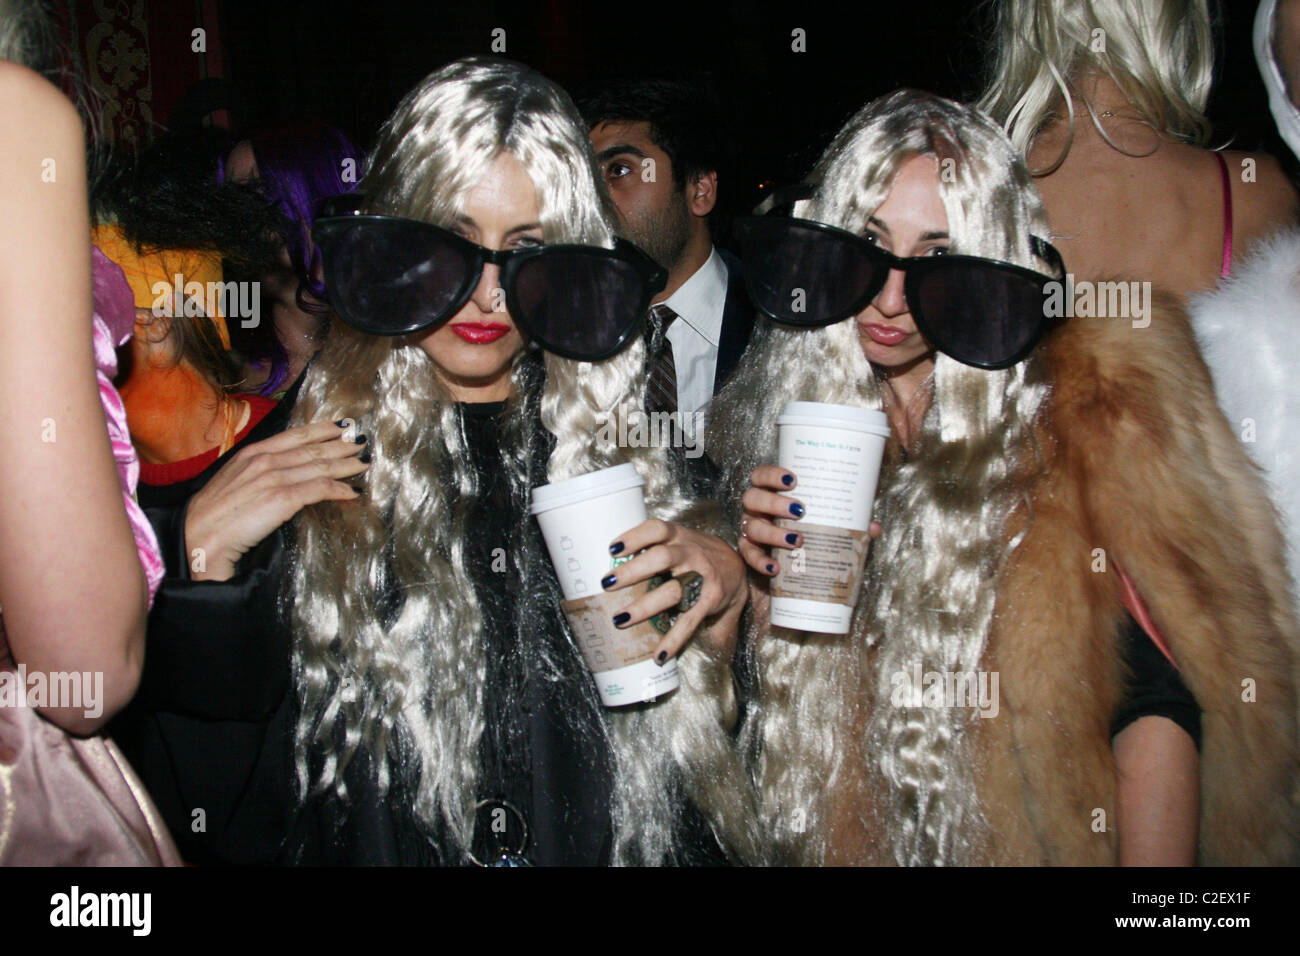 mary kate olsen and ashley olsen costumes v magazine halloween party at the rose bar in the gramercy park hotel inside new - Mary Kate And Ashley Olsen Halloween